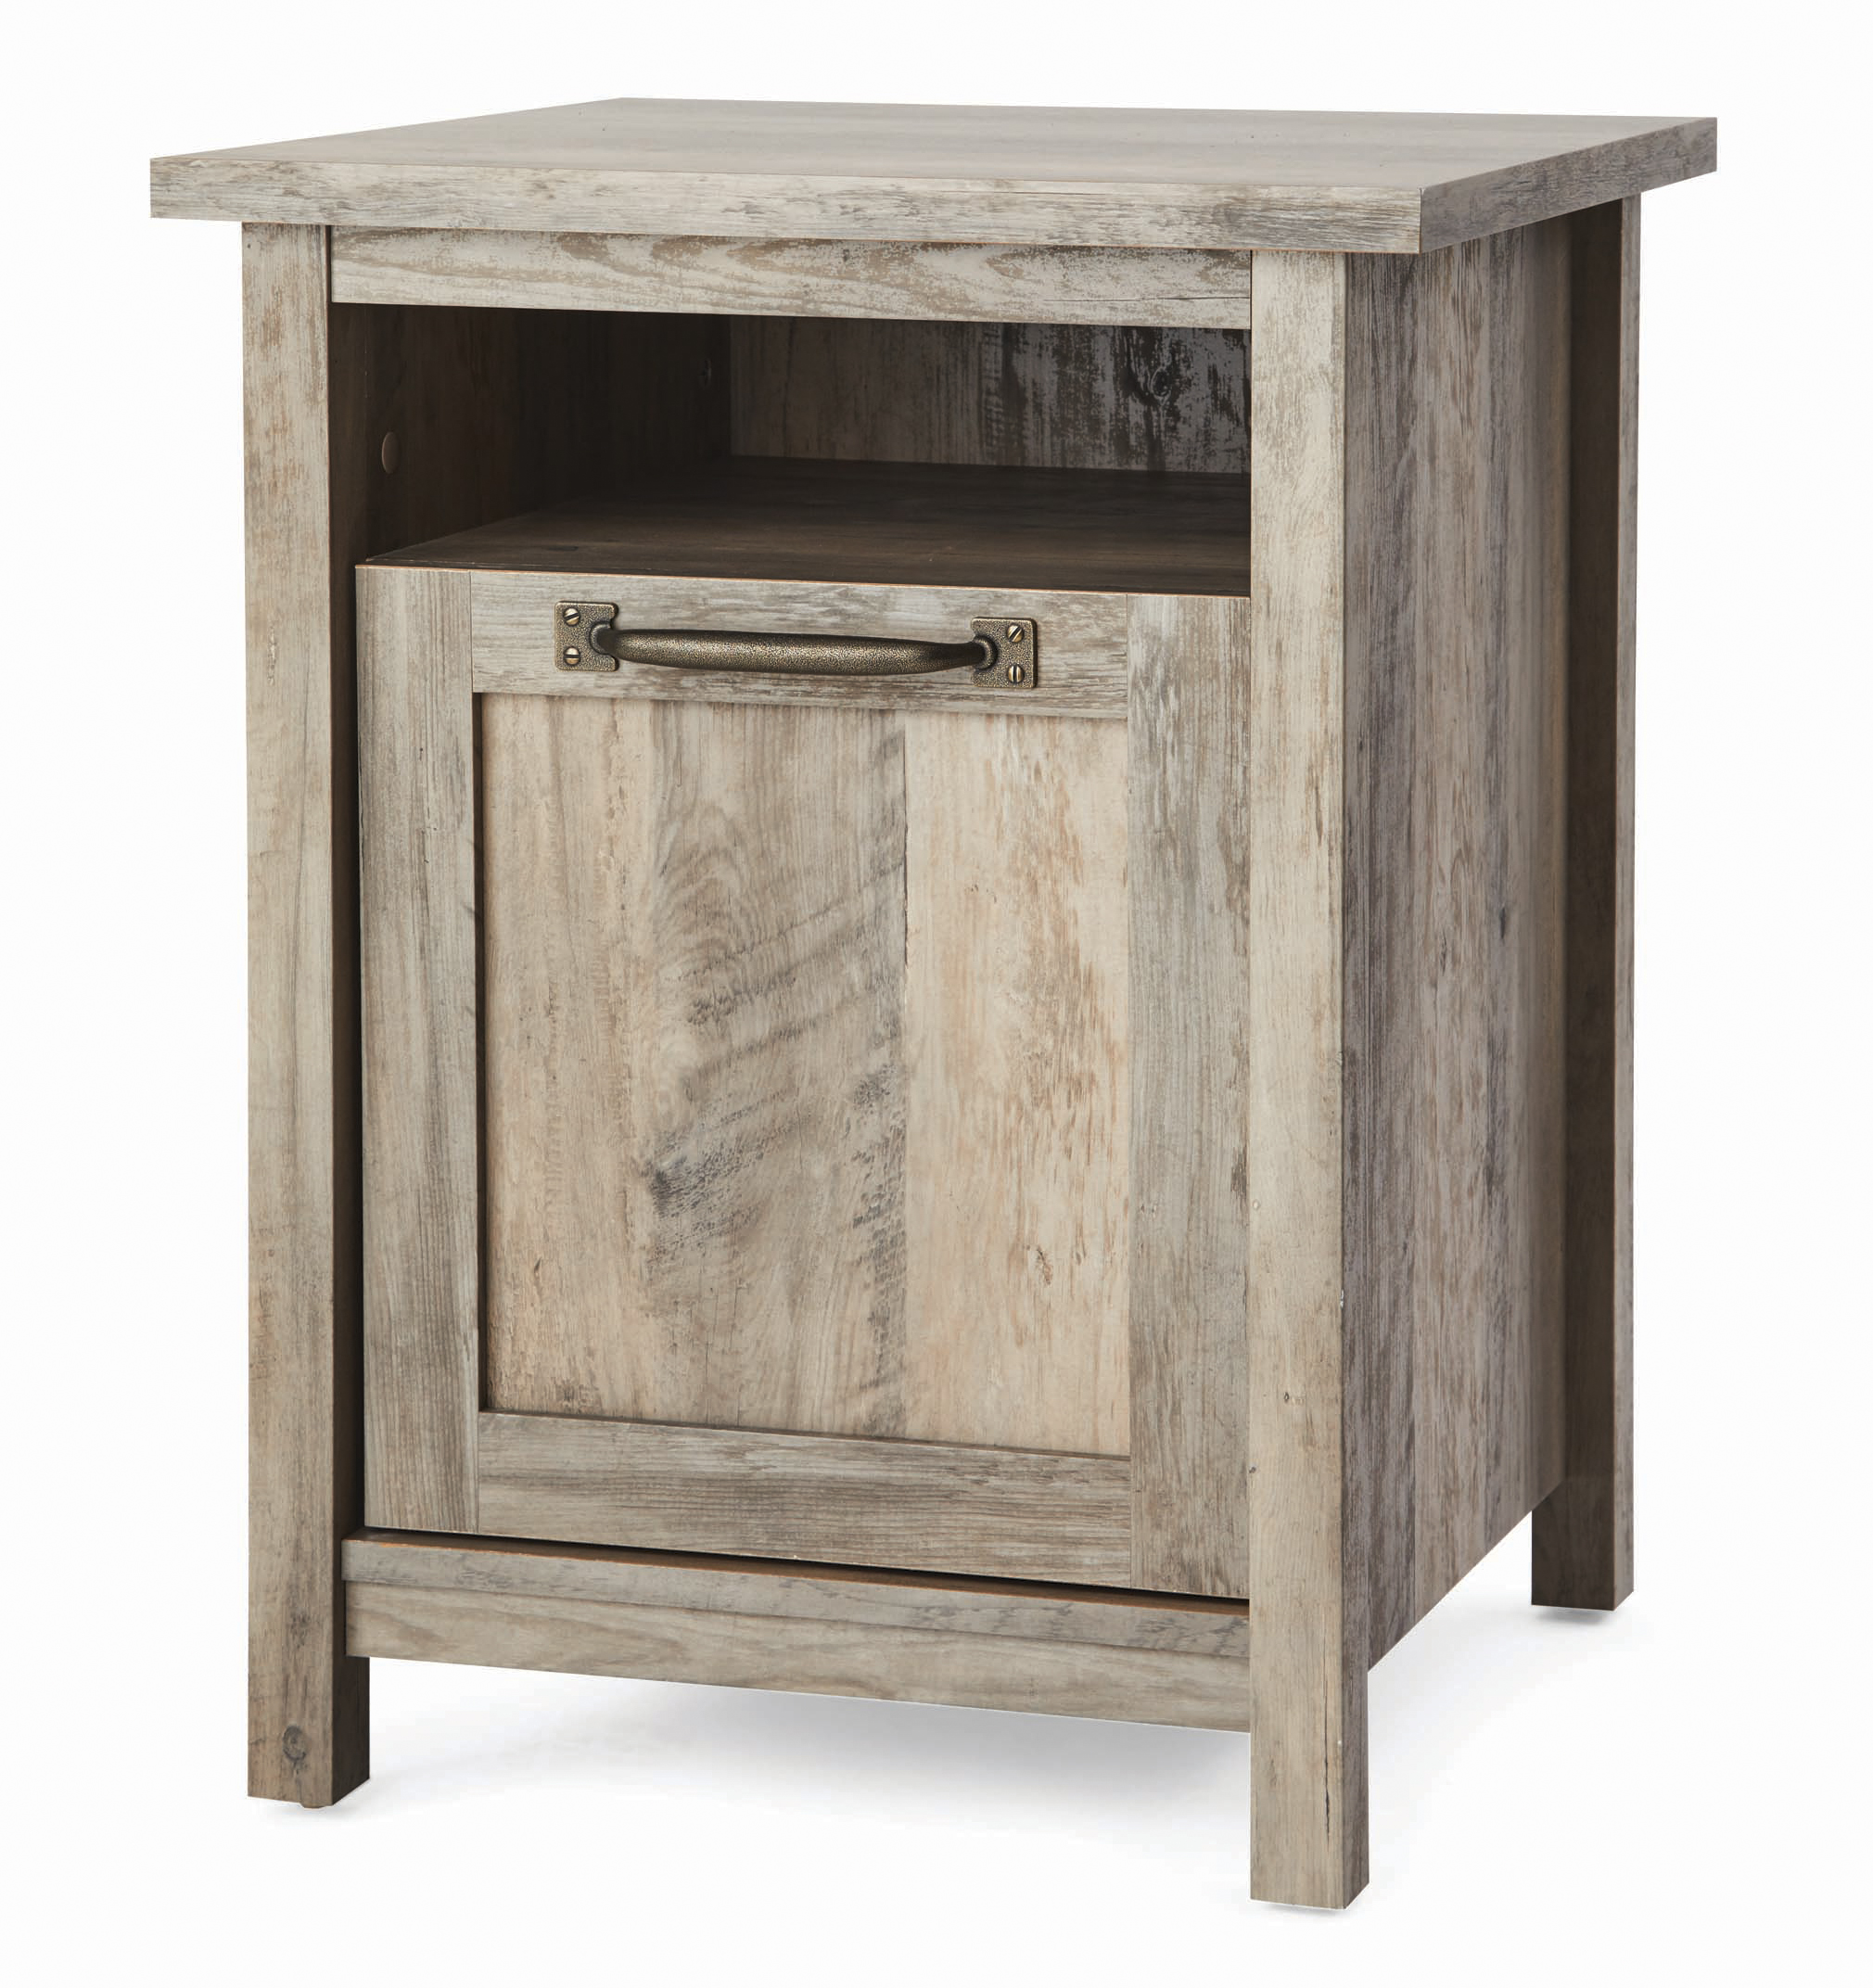 better homes gardens modern farmhouse nightstand with usb rustic and accent table gray finish rhinestone lamp shade glass mirror dresser prefinished solid hardwood flooring